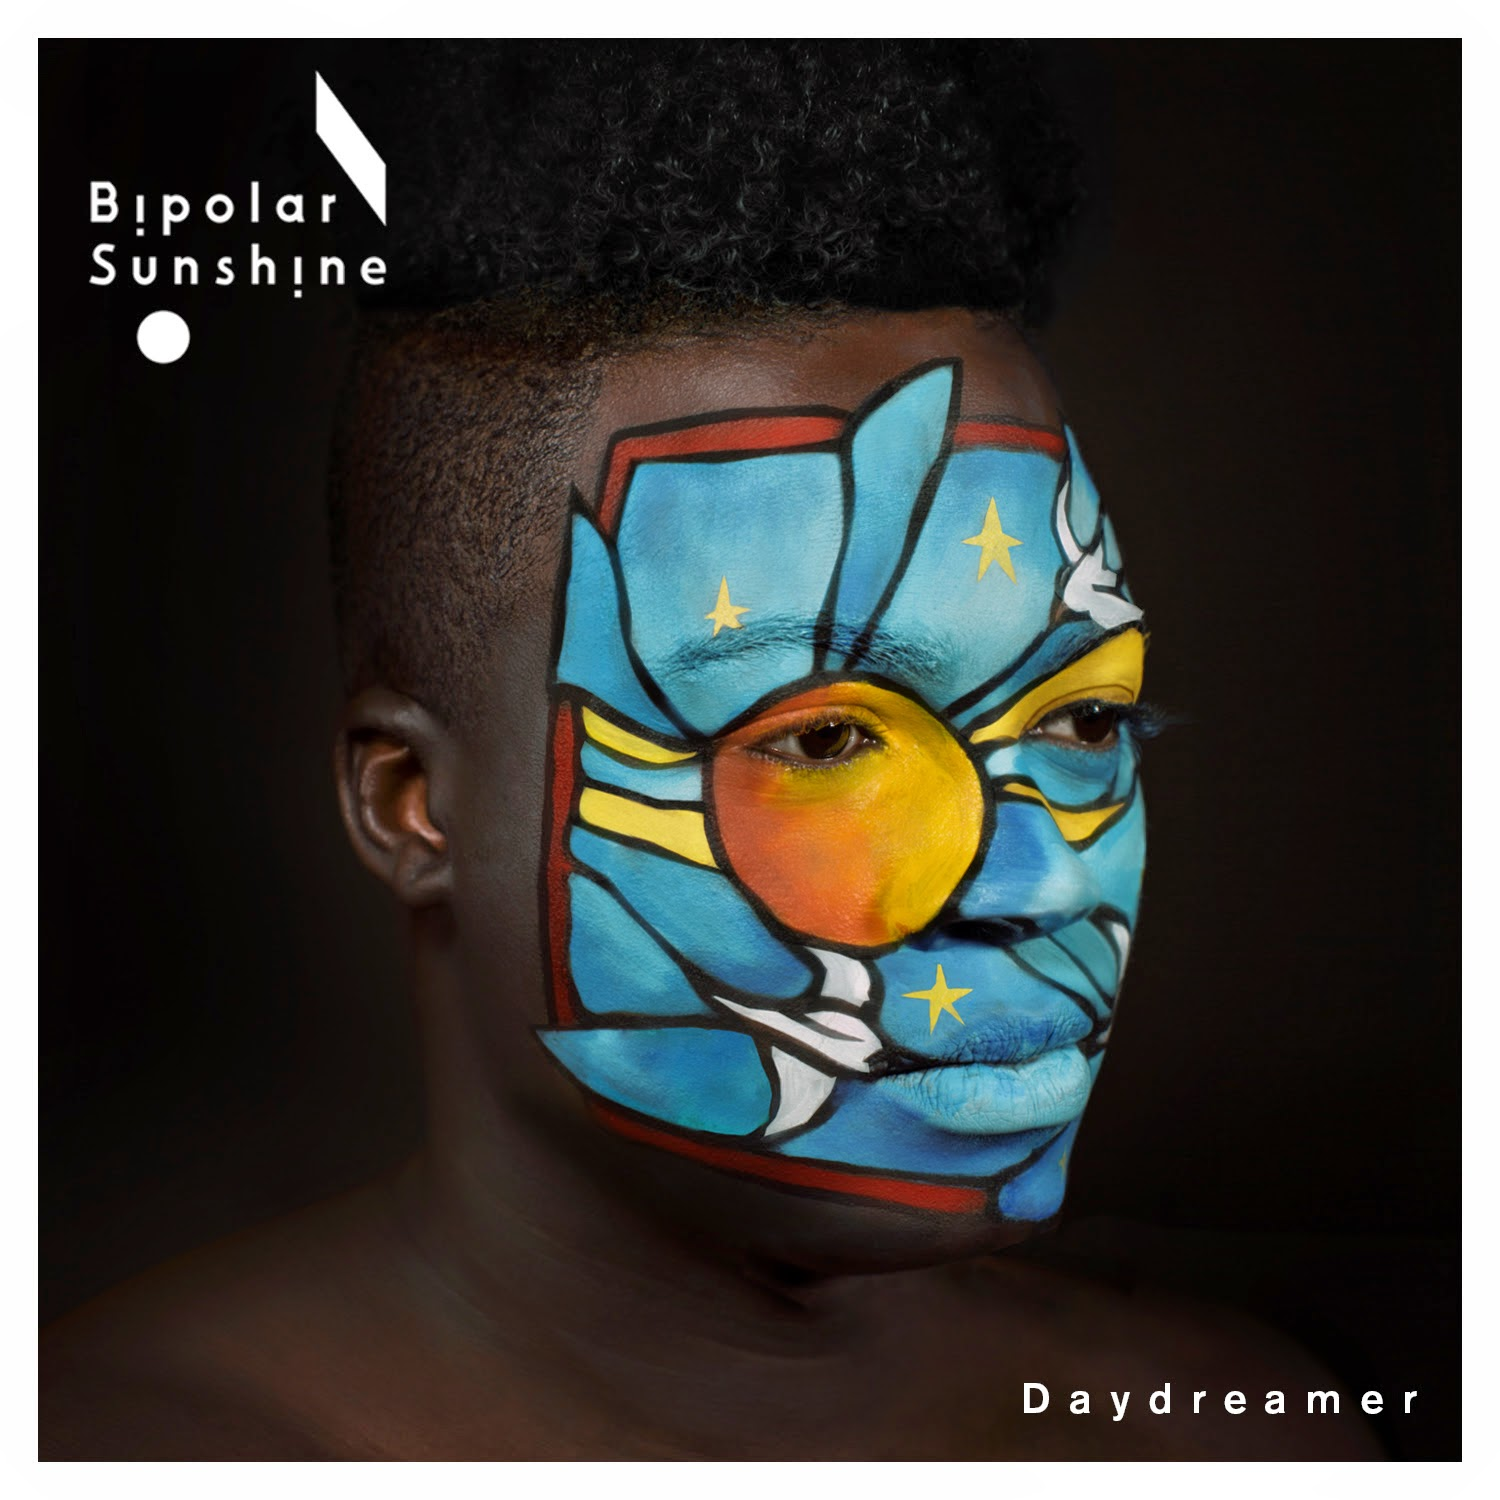 Bipolar Sunshine new single Daydreamer